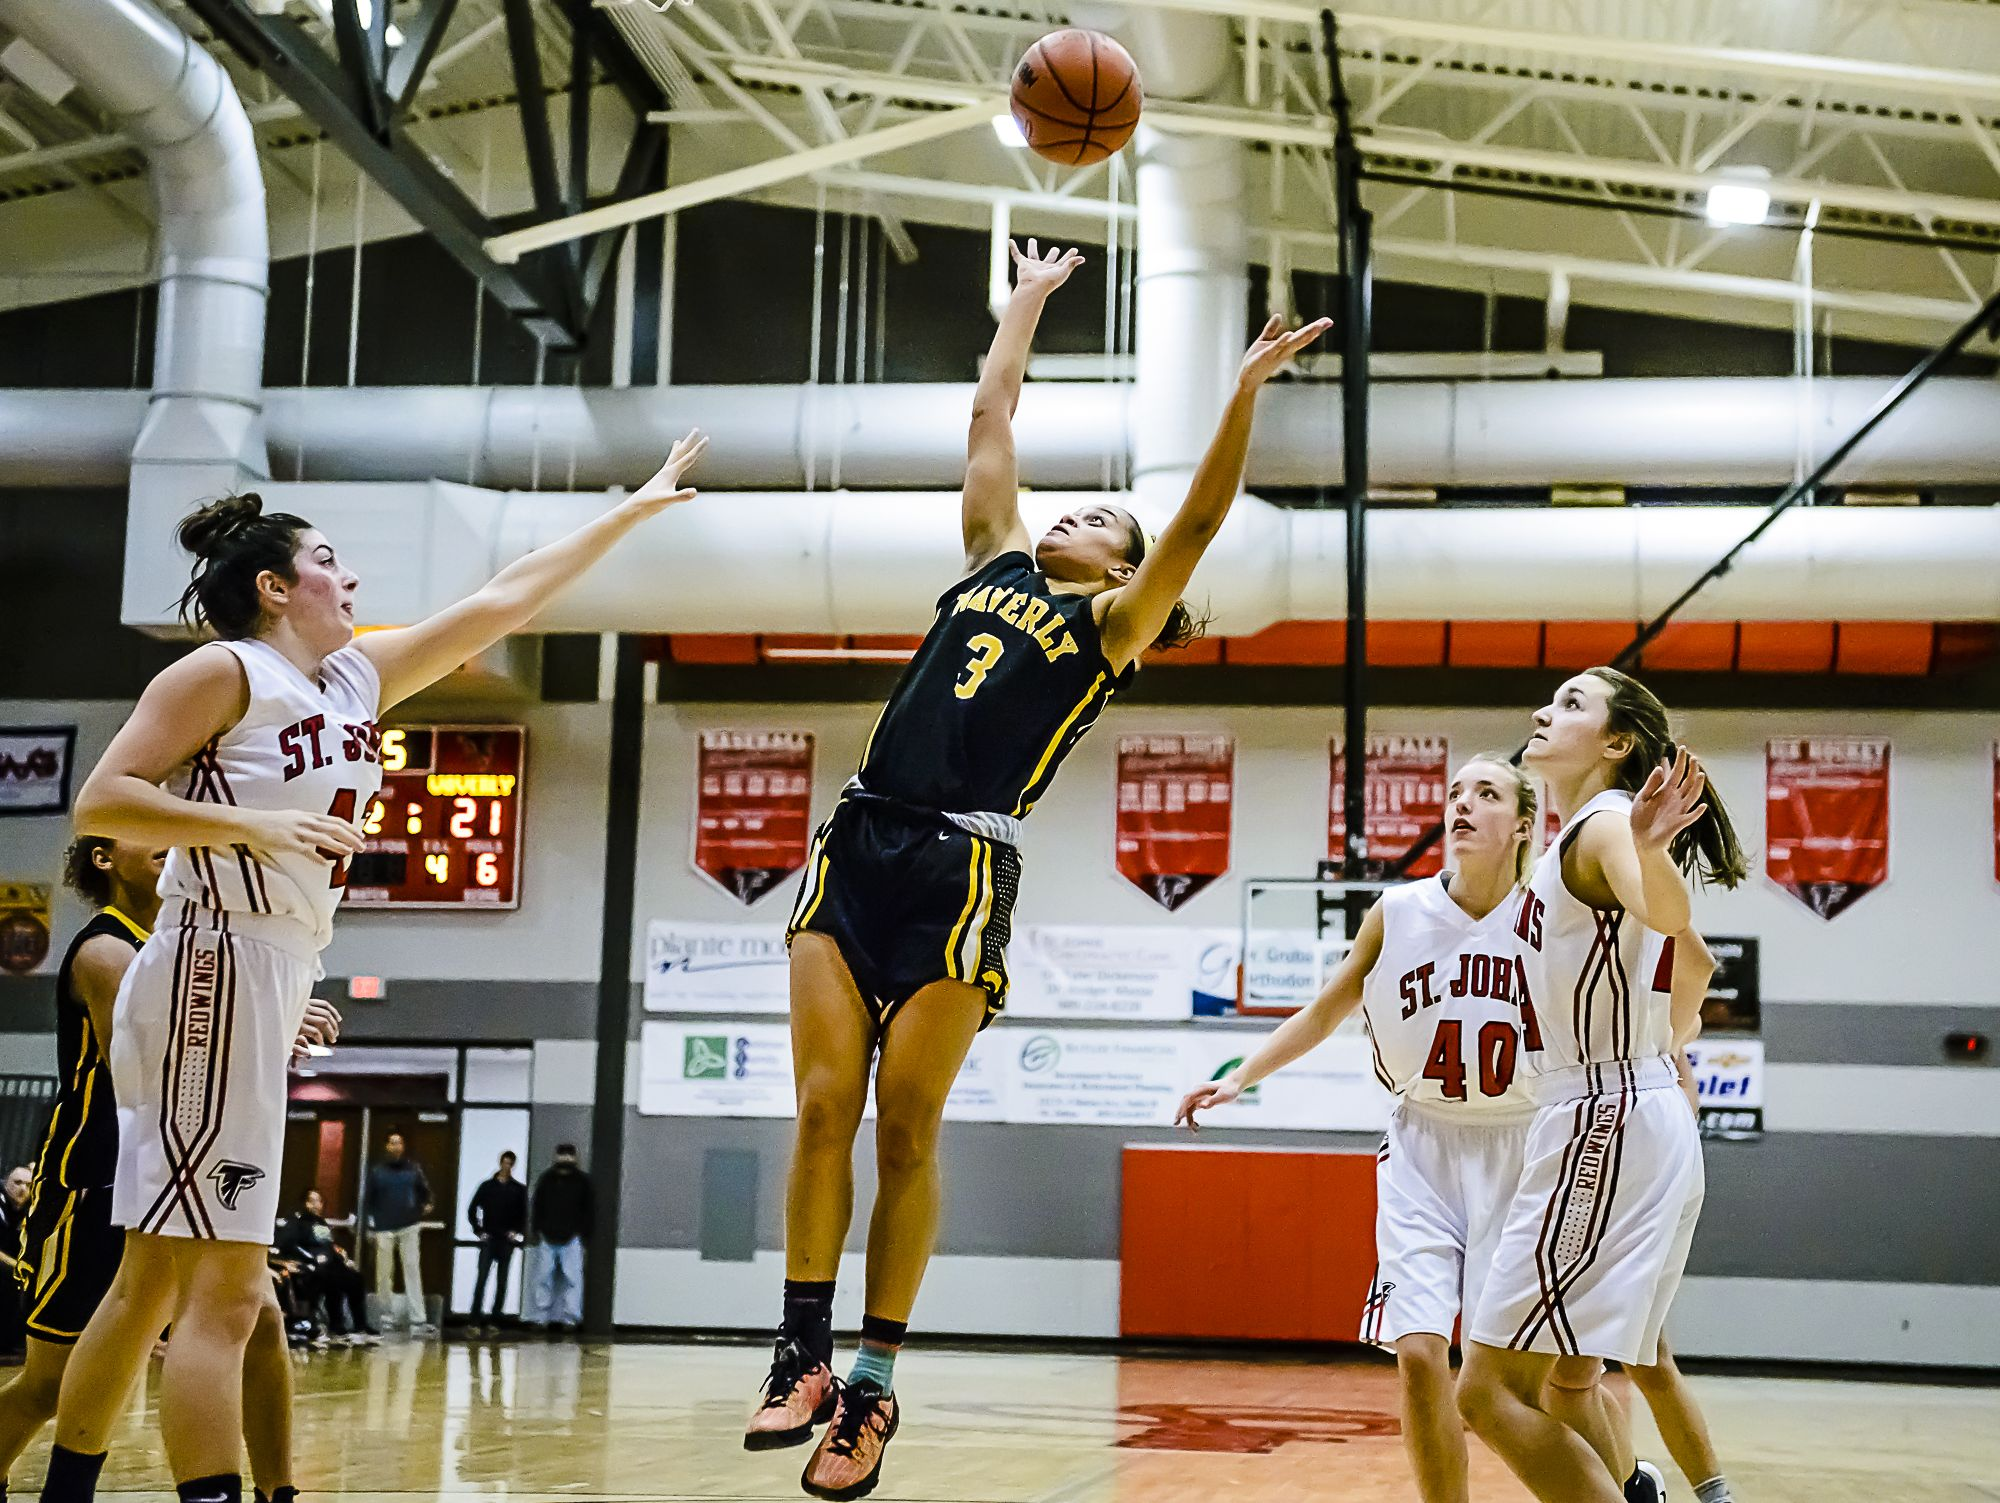 Jazlynn Wilcox ,center, of Waverly lays the ball up while surrounded by St. Johns defenders during their game Friday January 27, 2017 in St. Johns. KEVIN W. FOWLER PHOTO